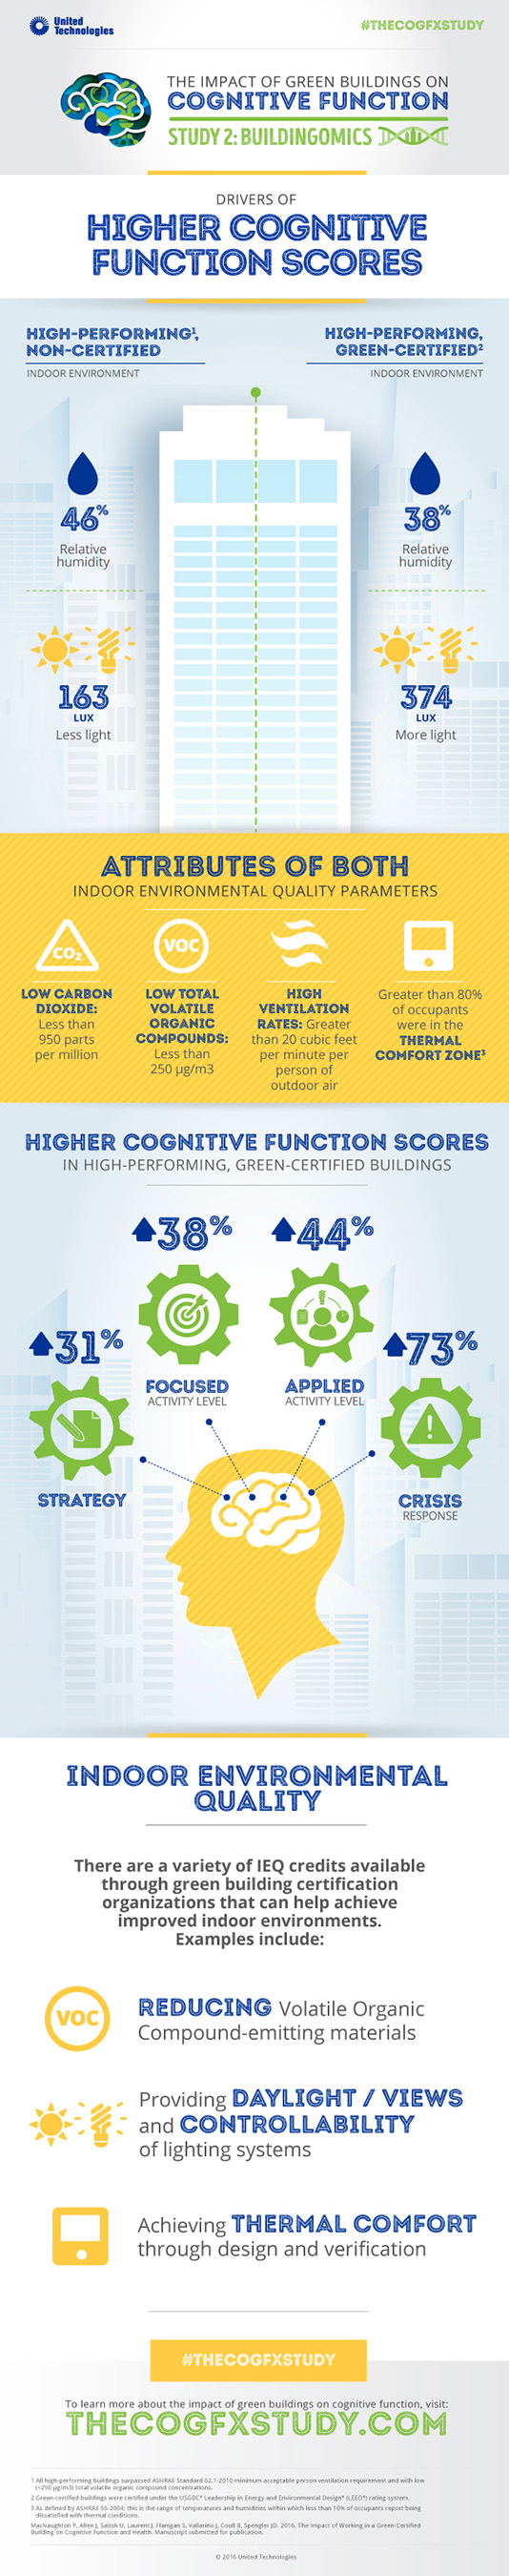 Drivers of Higher Cognitive Function Scores